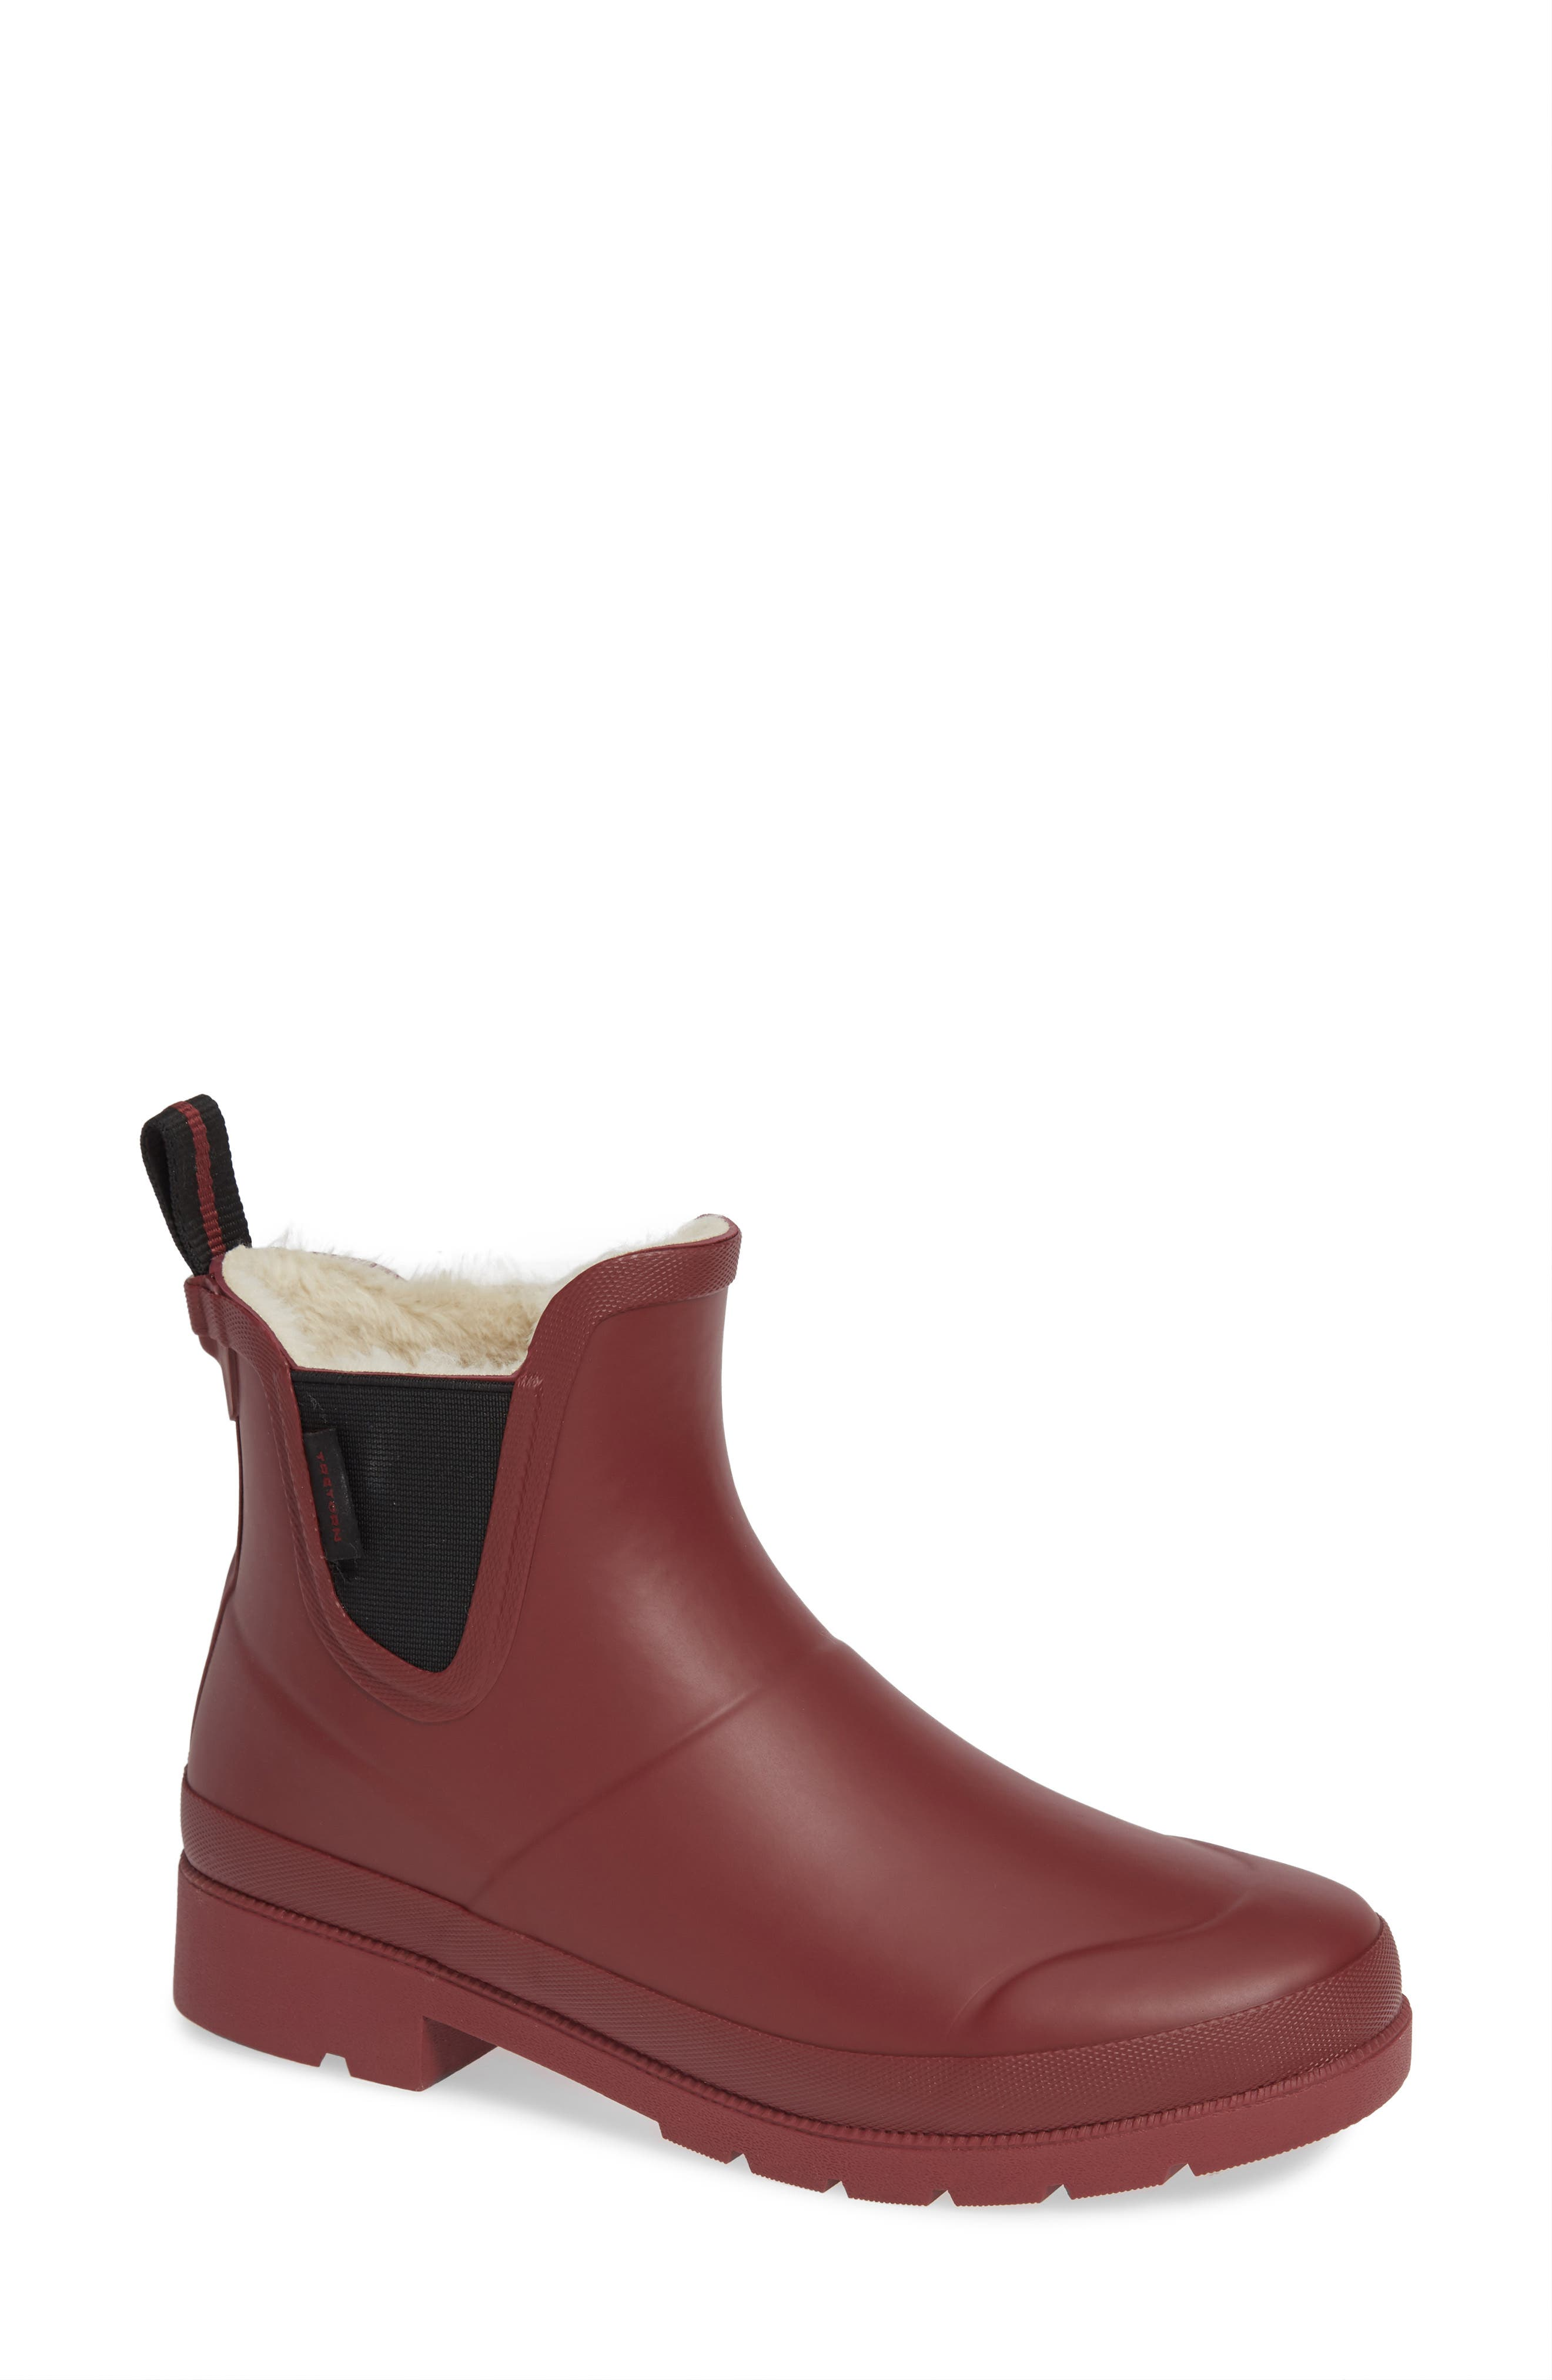 Women'S Lina Cold-Weather Booties in Bordeaux/ Black